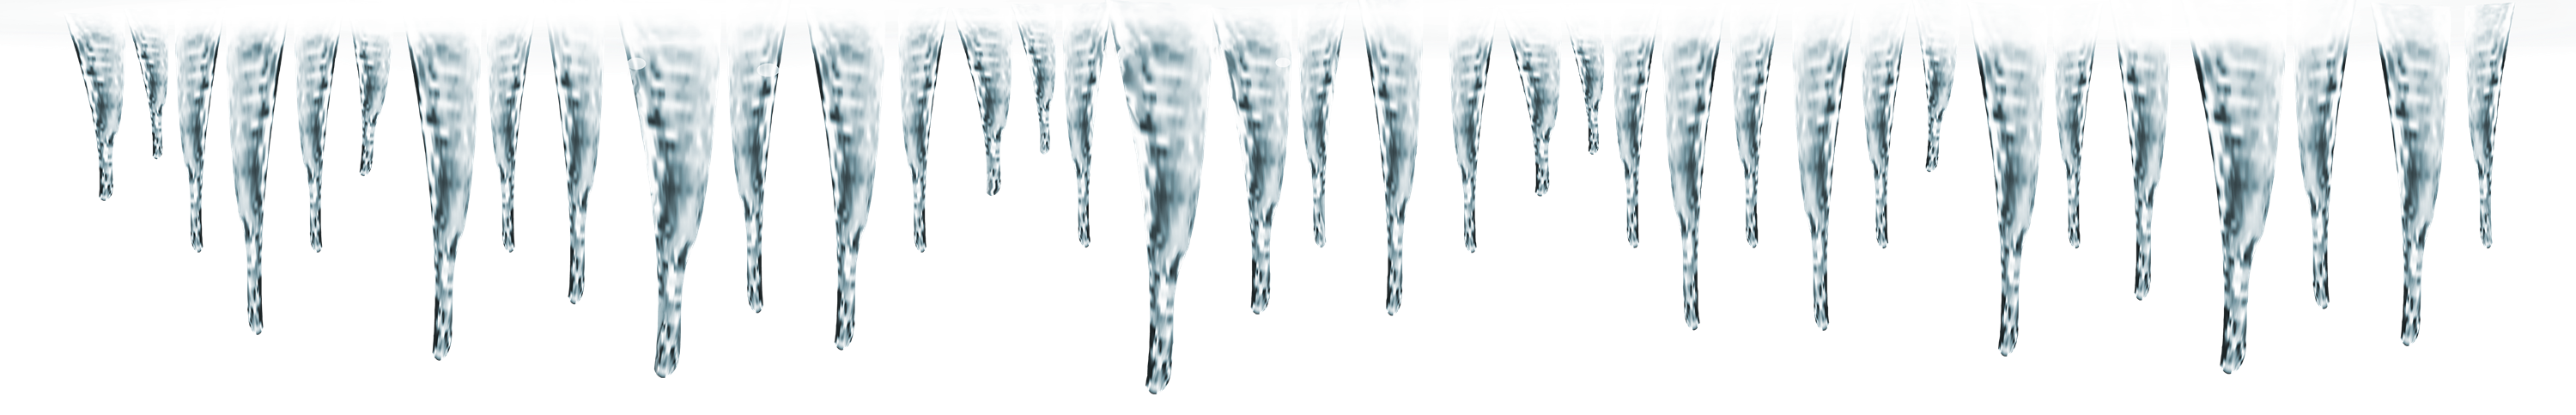 jpg royalty free library Icicle drawing snow melting.  icicles on roof